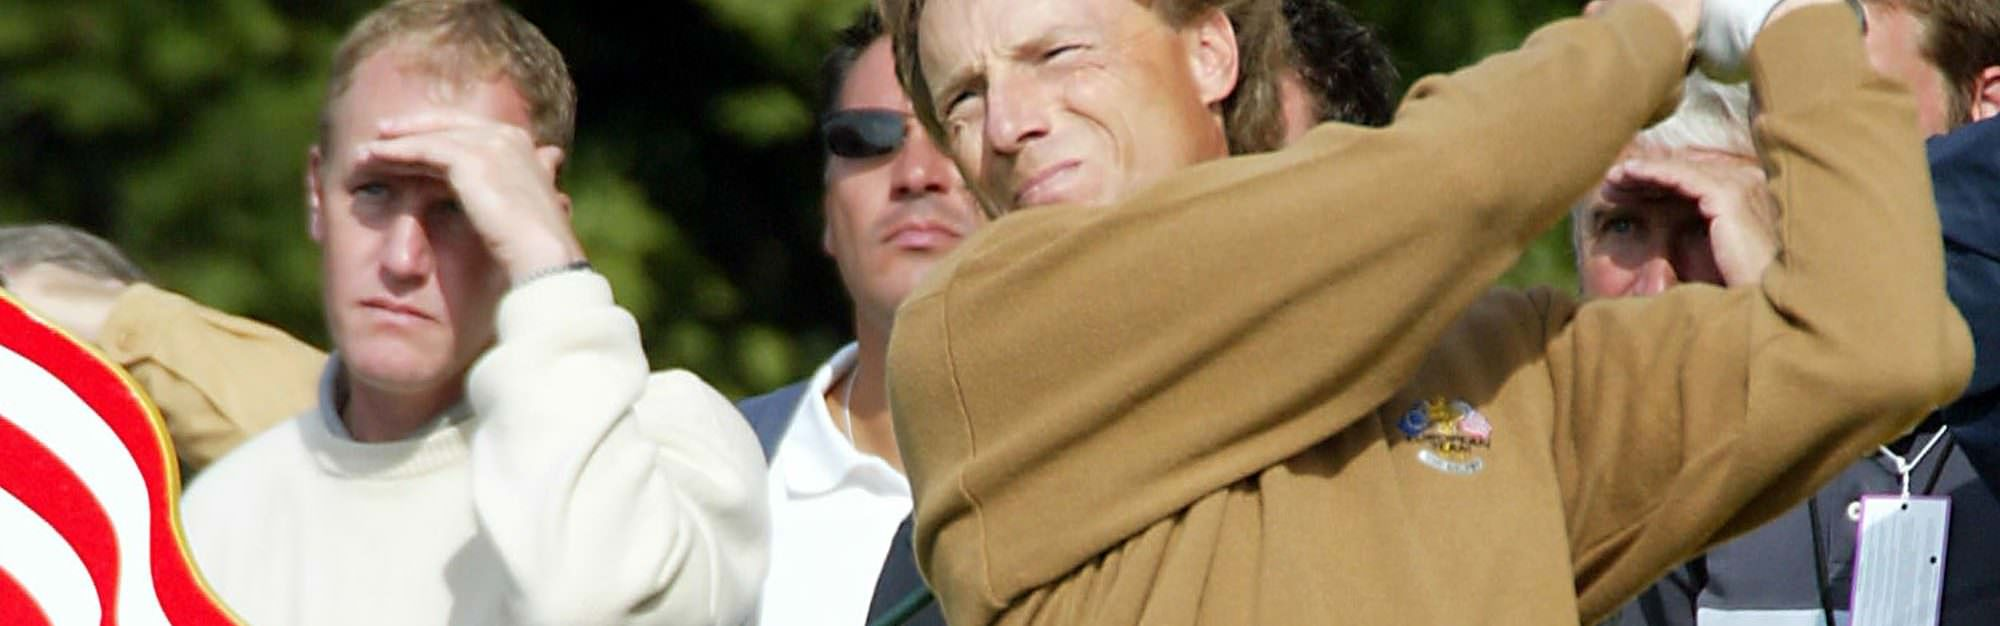 Langer on the Ryder Cup: Let's get back to business as usual